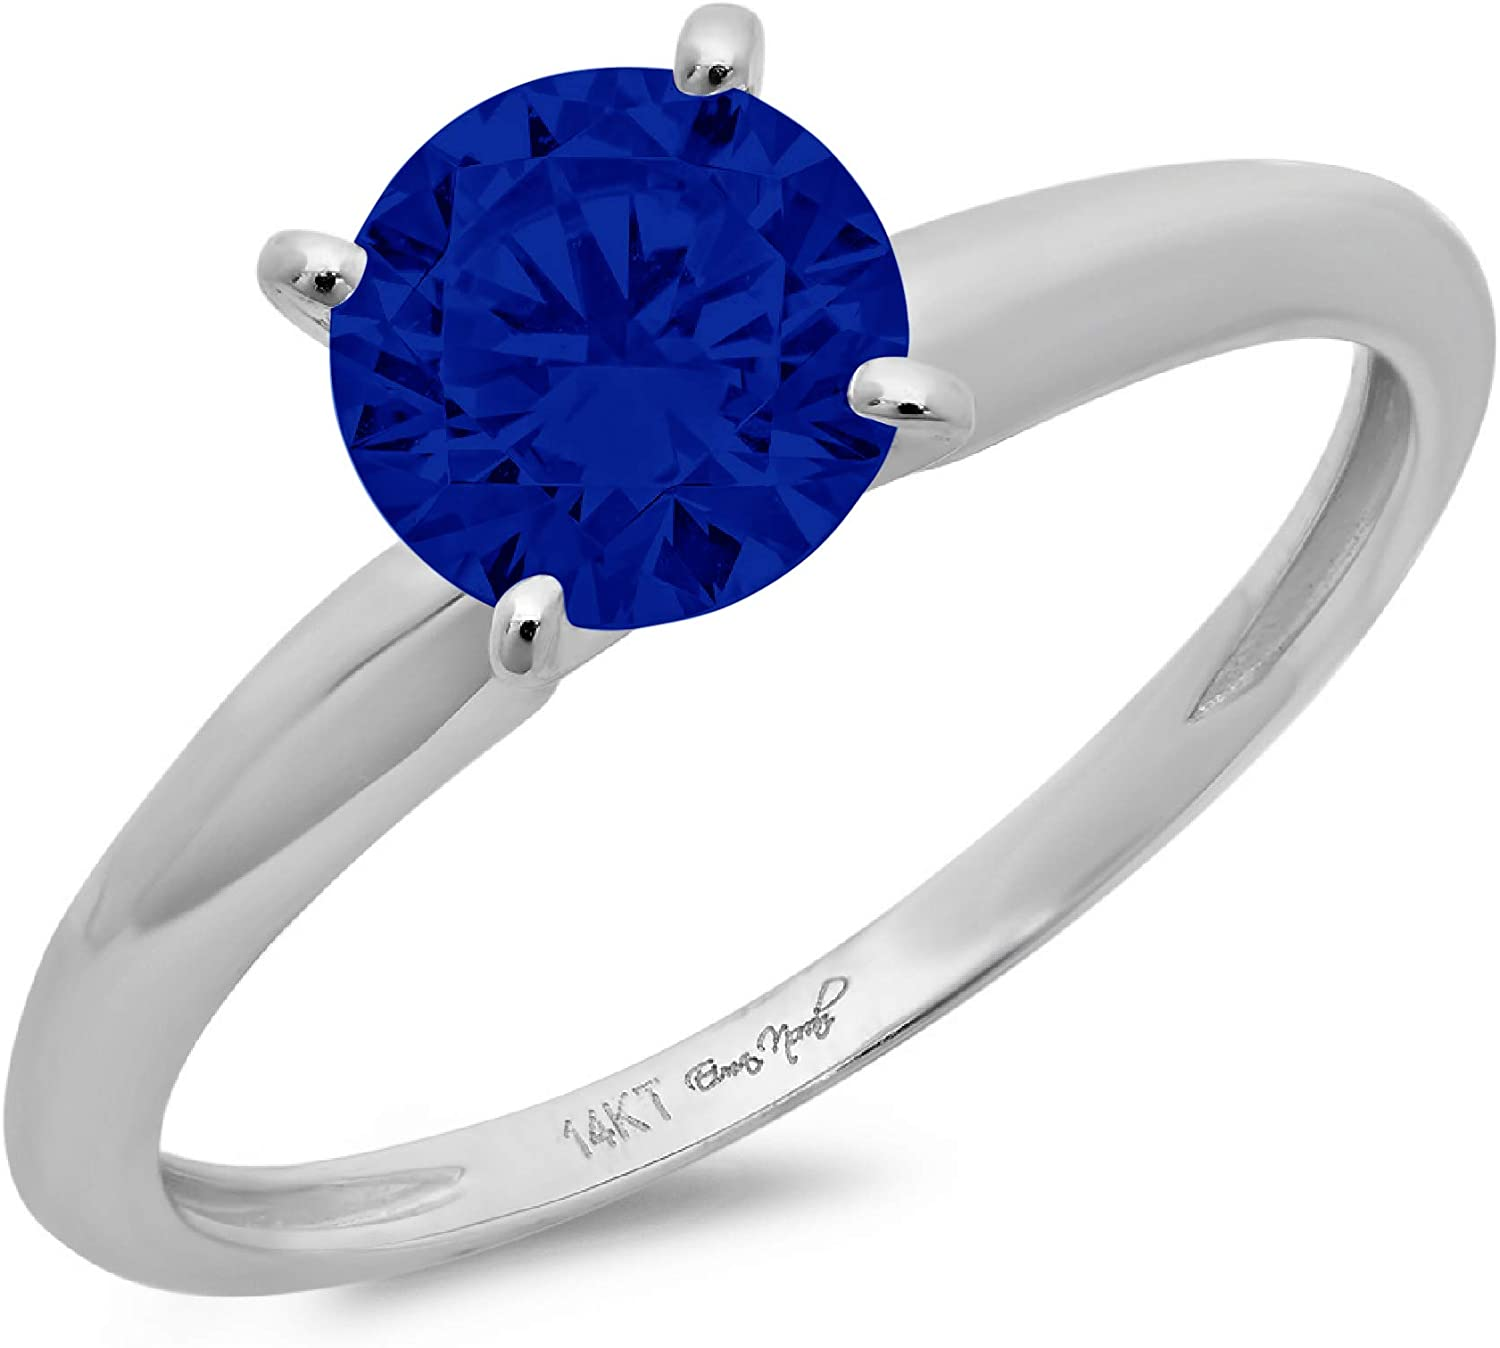 0.4ct Brilliant Round Cut Solitaire Flawless Simulated CZ Blue Sapphire Ideal 4-Prong Engagement Wedding Bridal Promise Anniversary Designer Ring in Solid 14k white Gold for Women